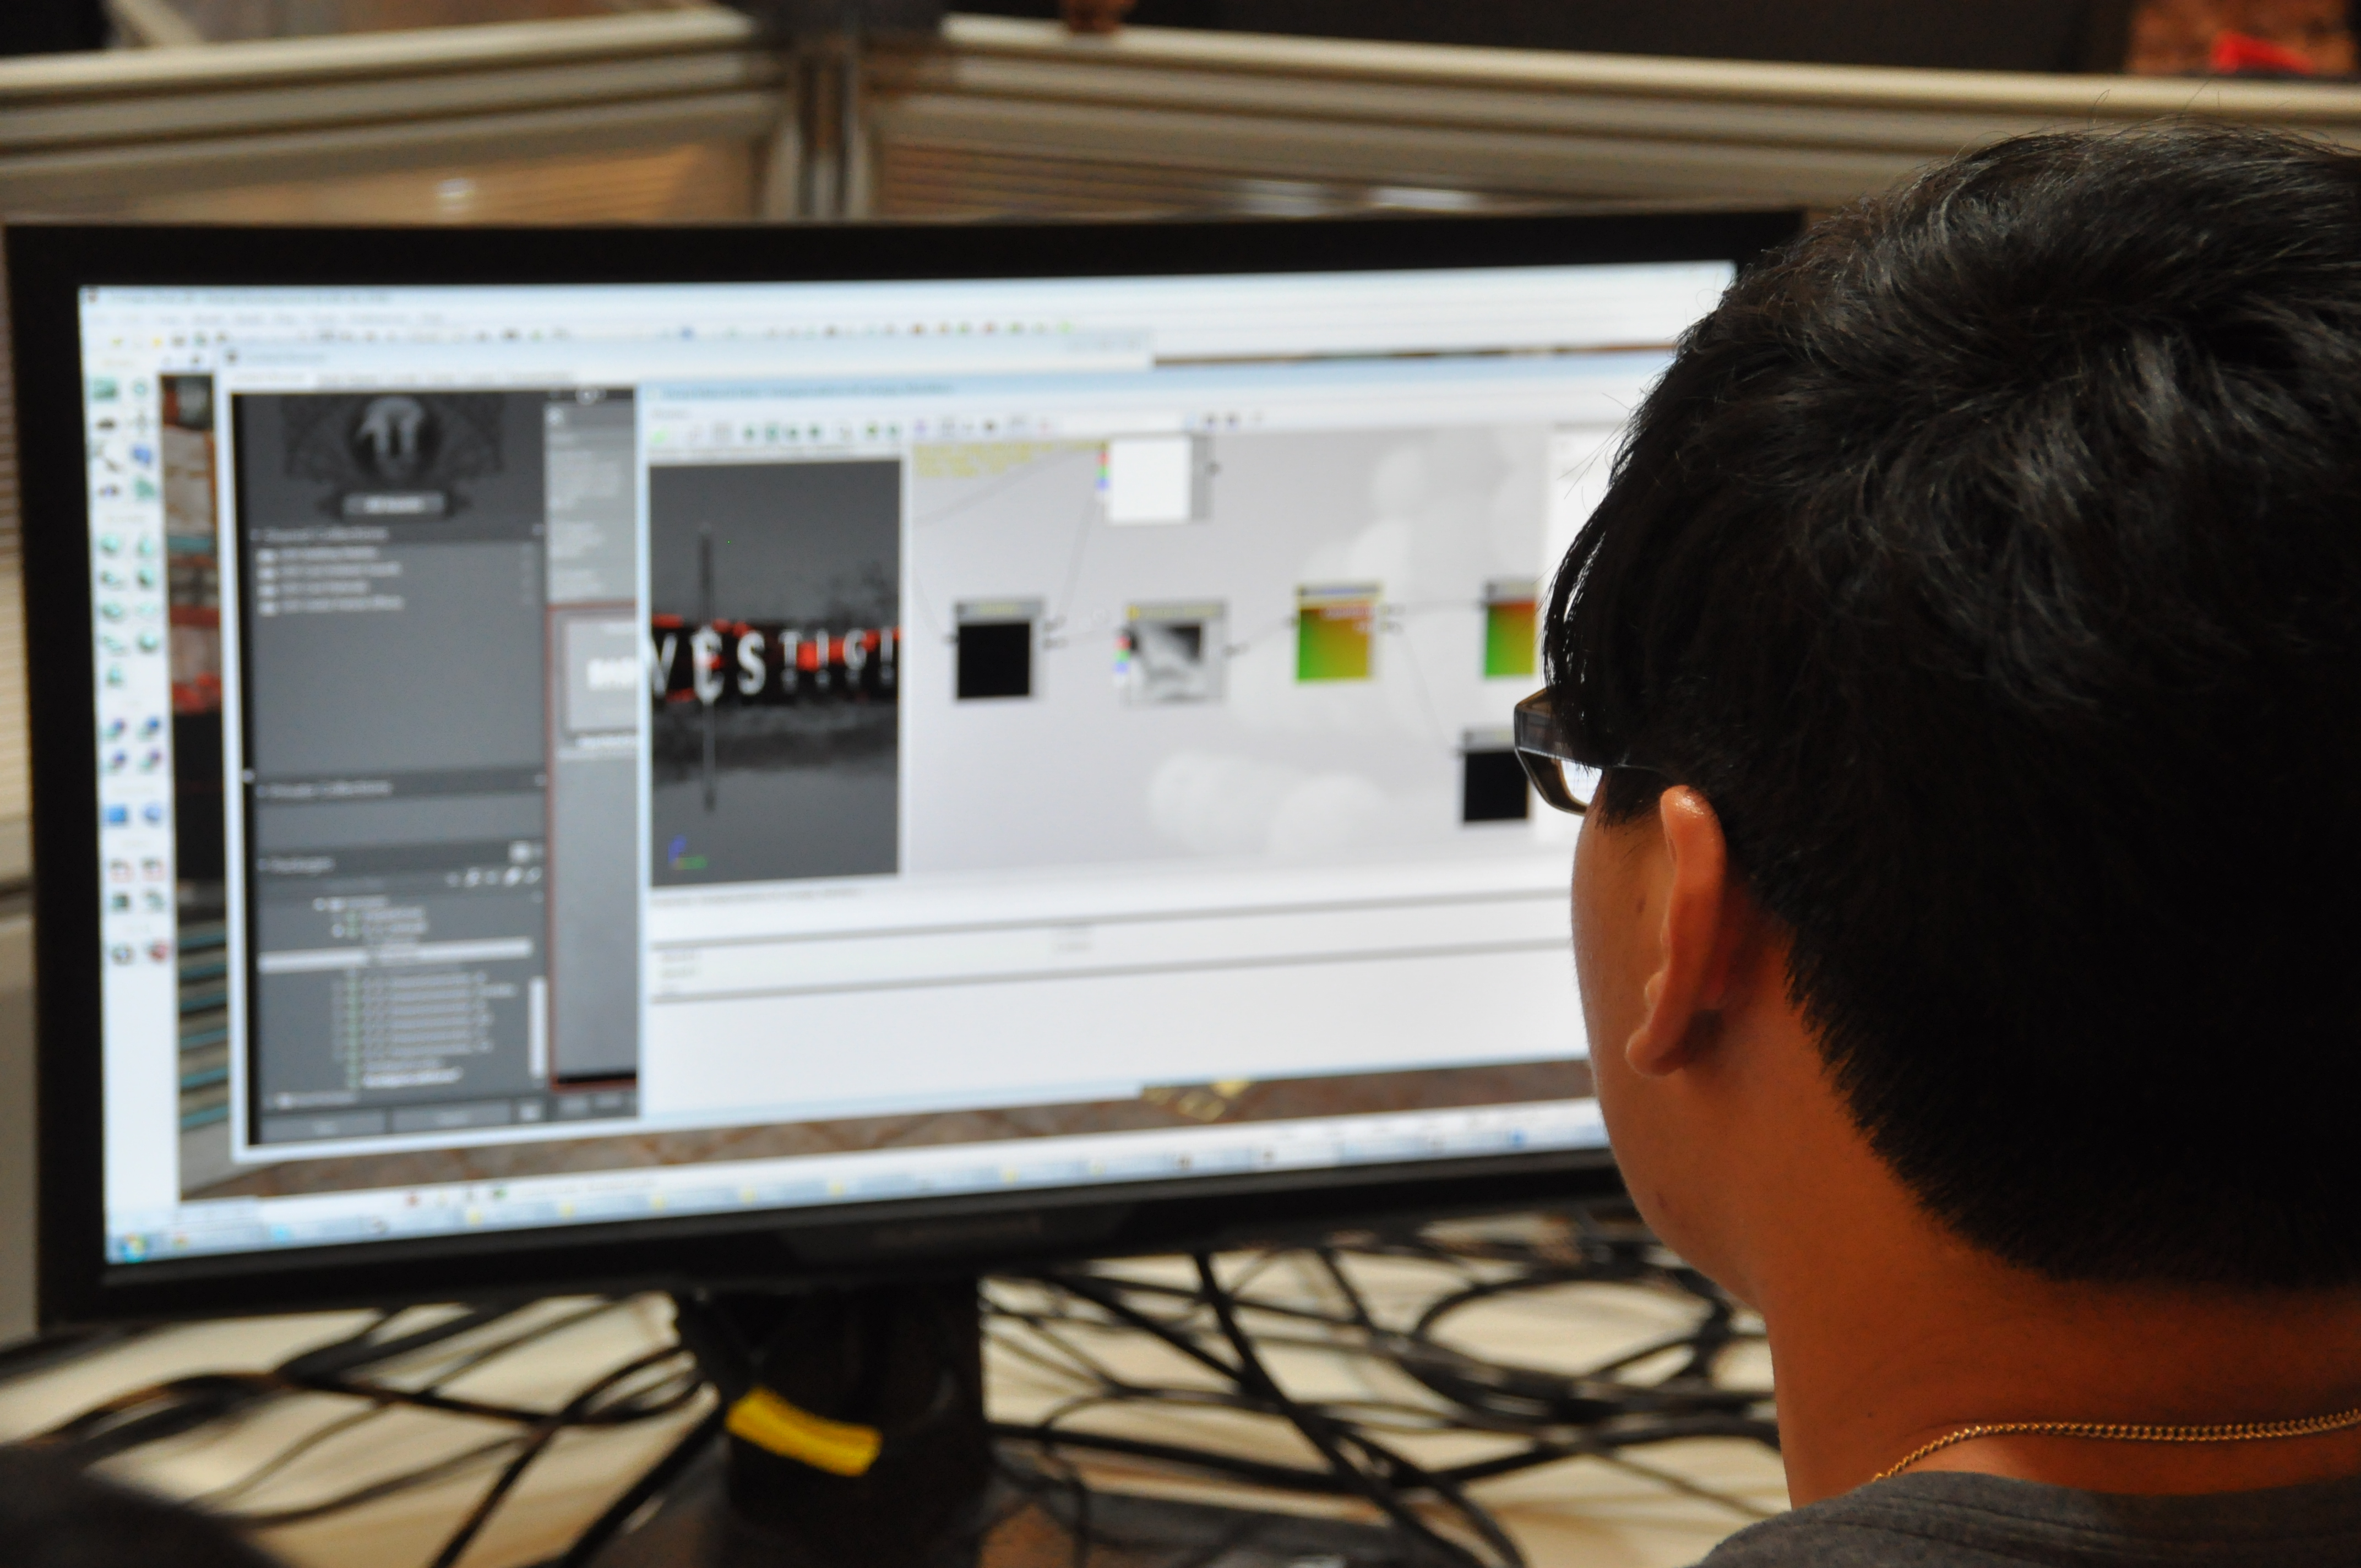 What Colleges Universitys would be good for Game Design?